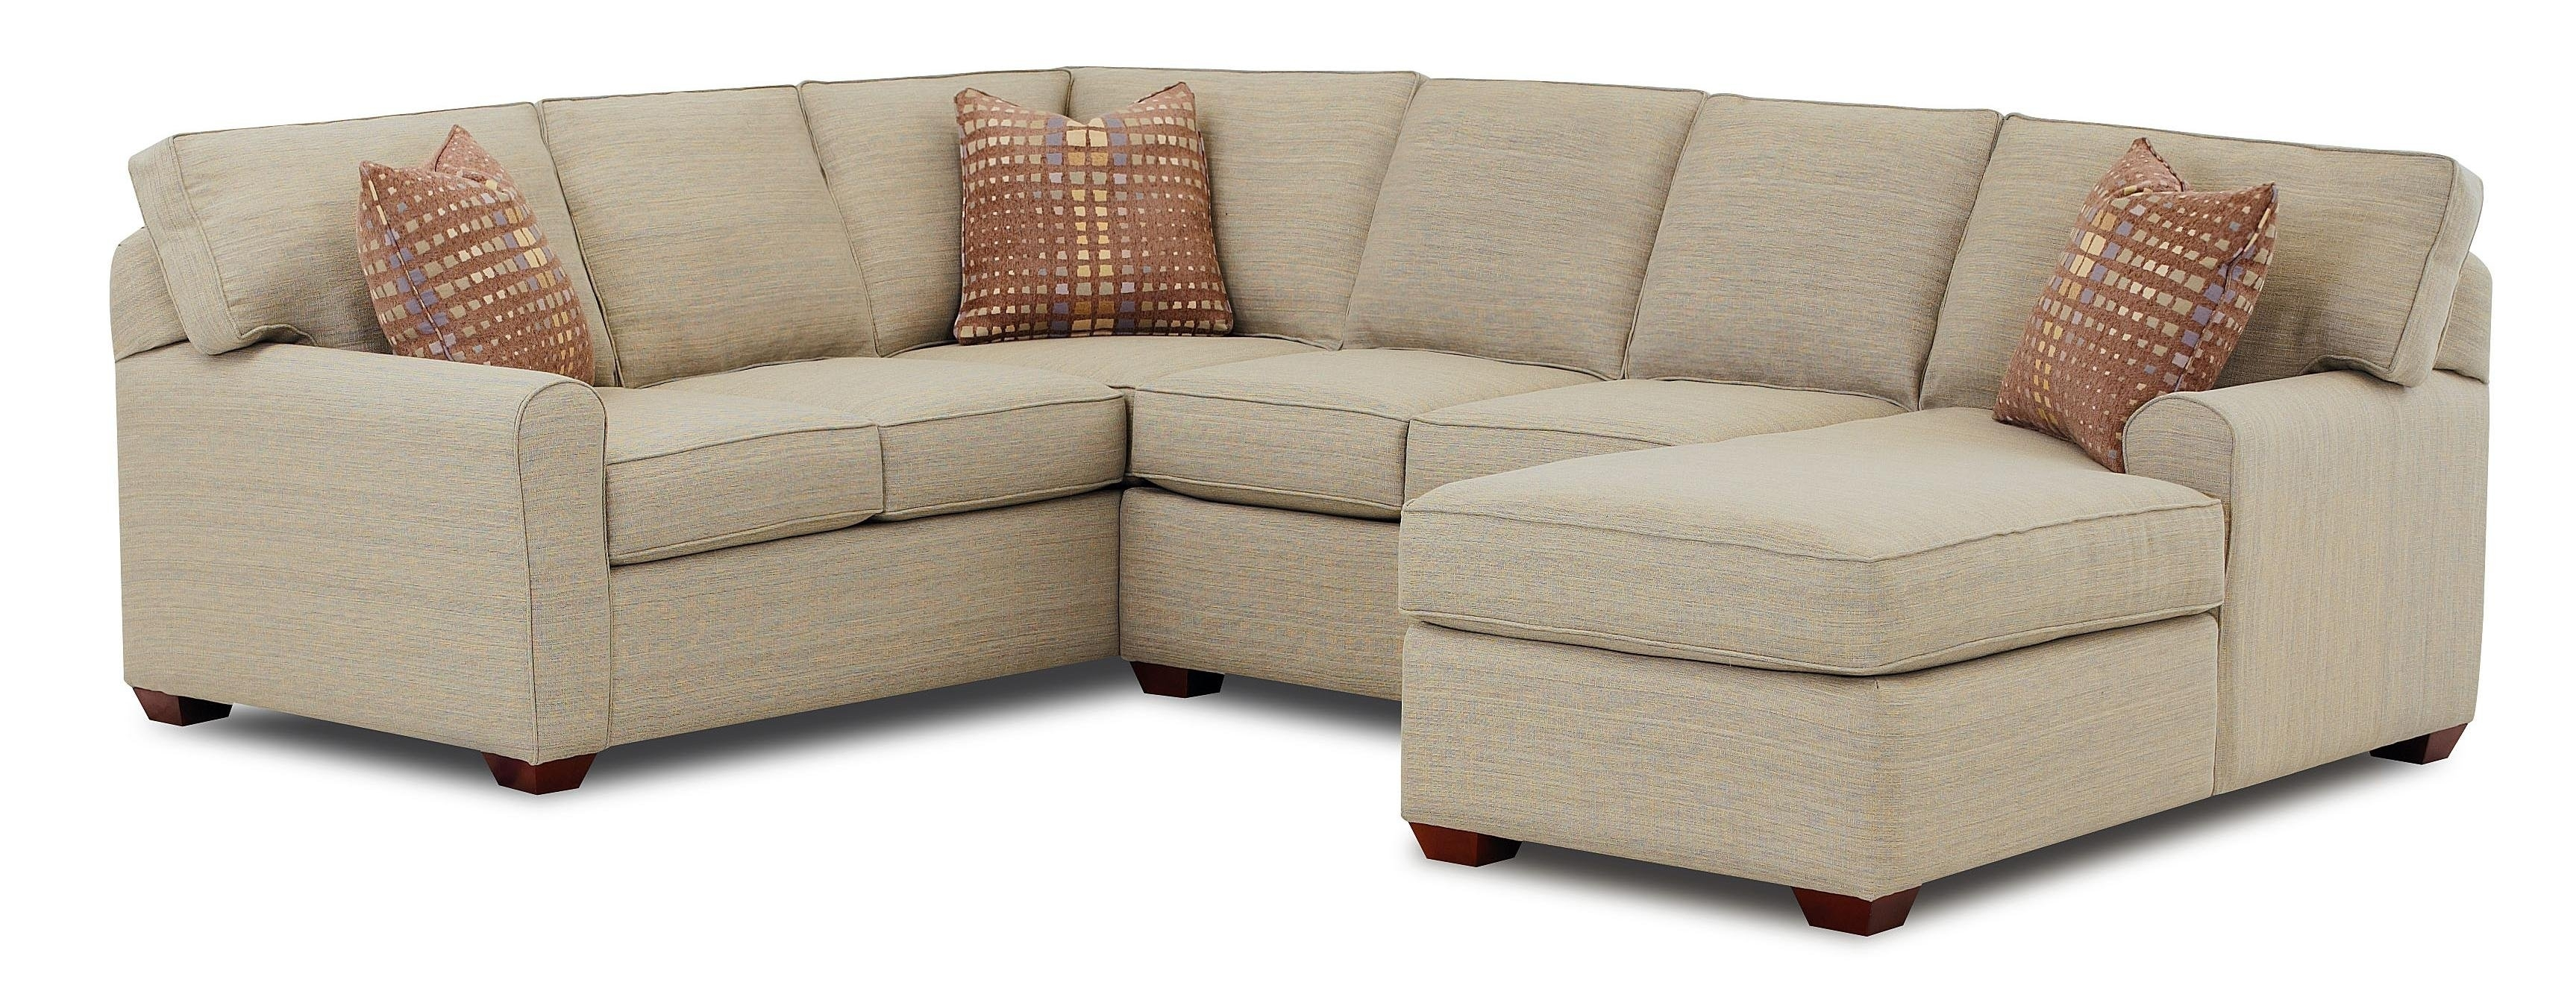 Bradley Sectional Sofa Leather Sectional Sofa